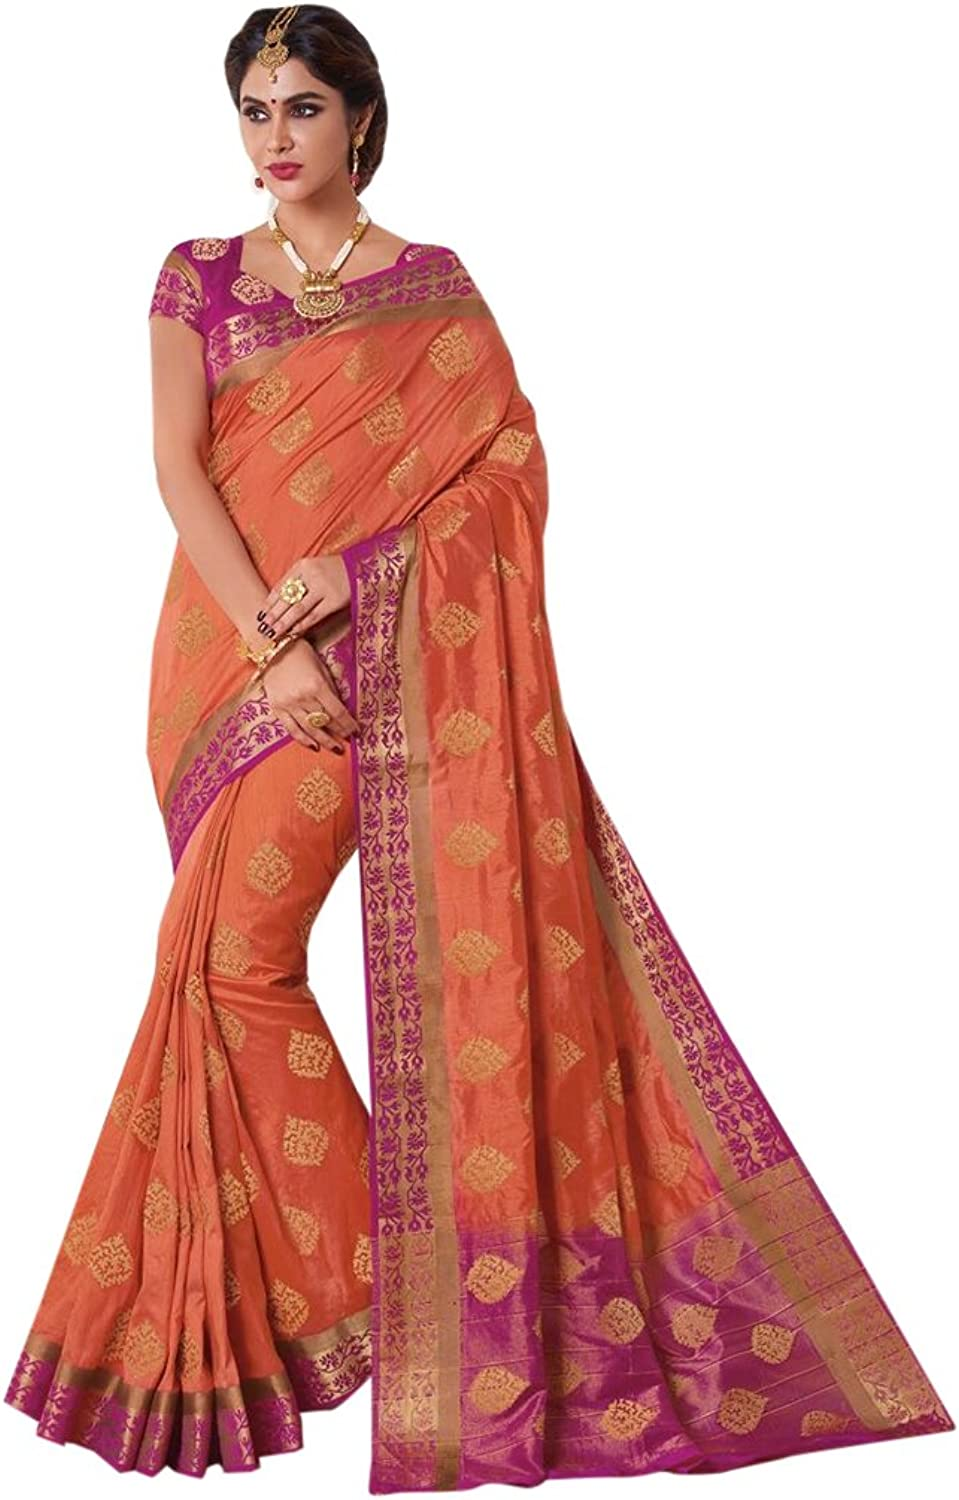 Designer Bollywood orange Silk Saree Sari for Women Latest Indian Ethnic Collection Casual Wear Festive Ceremony 2689 20